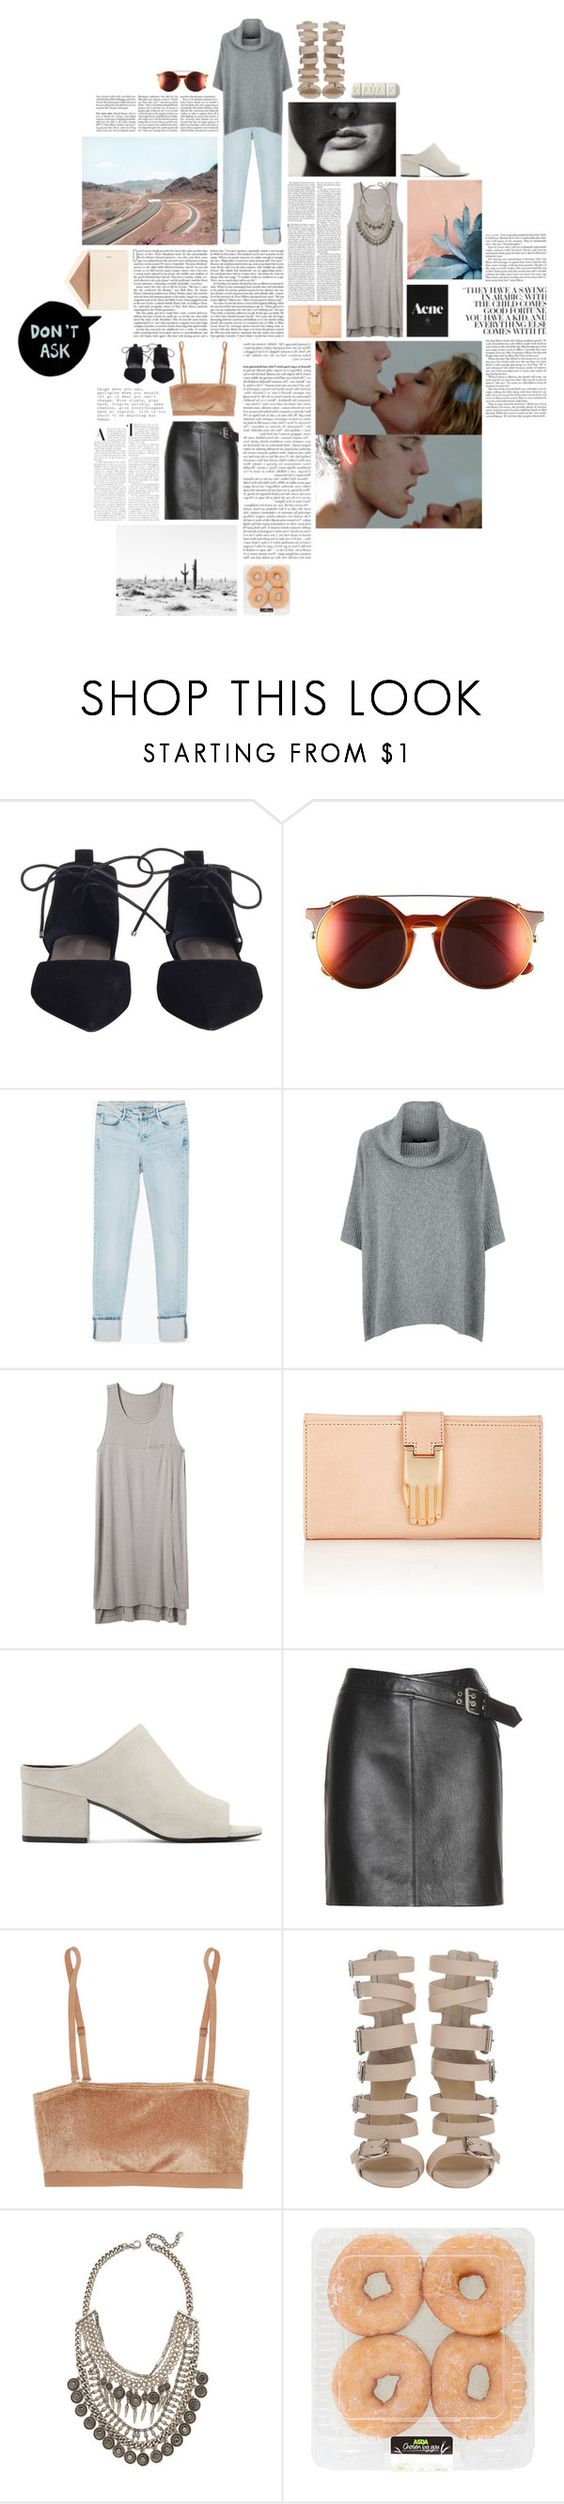 """""""don't ask."""" by tree-house ❤ liked on Polyvore featuring Zimmermann, Sunday Somewhere, Zara, Harrods, rag & bone, Edition, Opening Ceremony, Zephyr, 3.1 Phillip Lim and Yves Saint Laurent"""